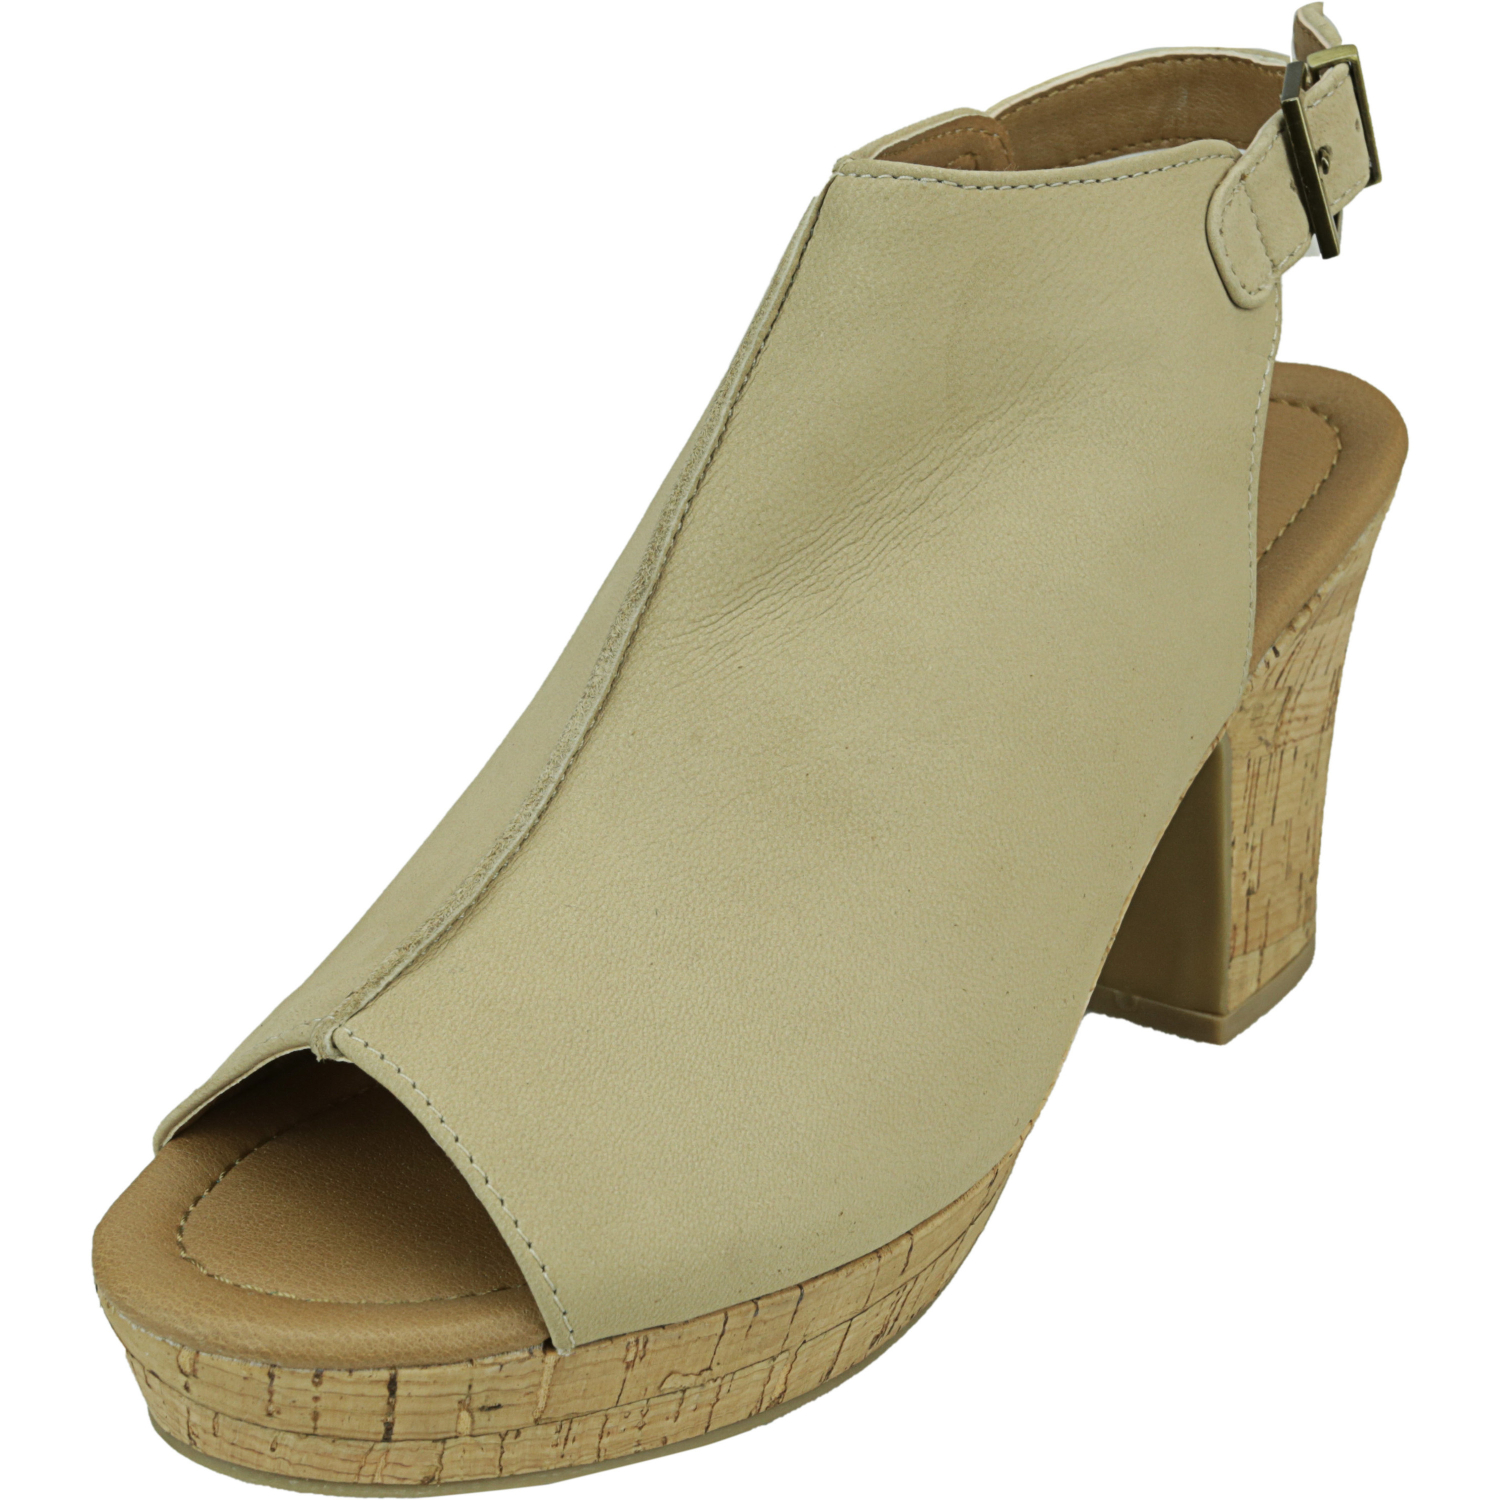 Kenneth Cole Women's Tole-Tally Stone Ankle-High Leather Sandal - 9.5M